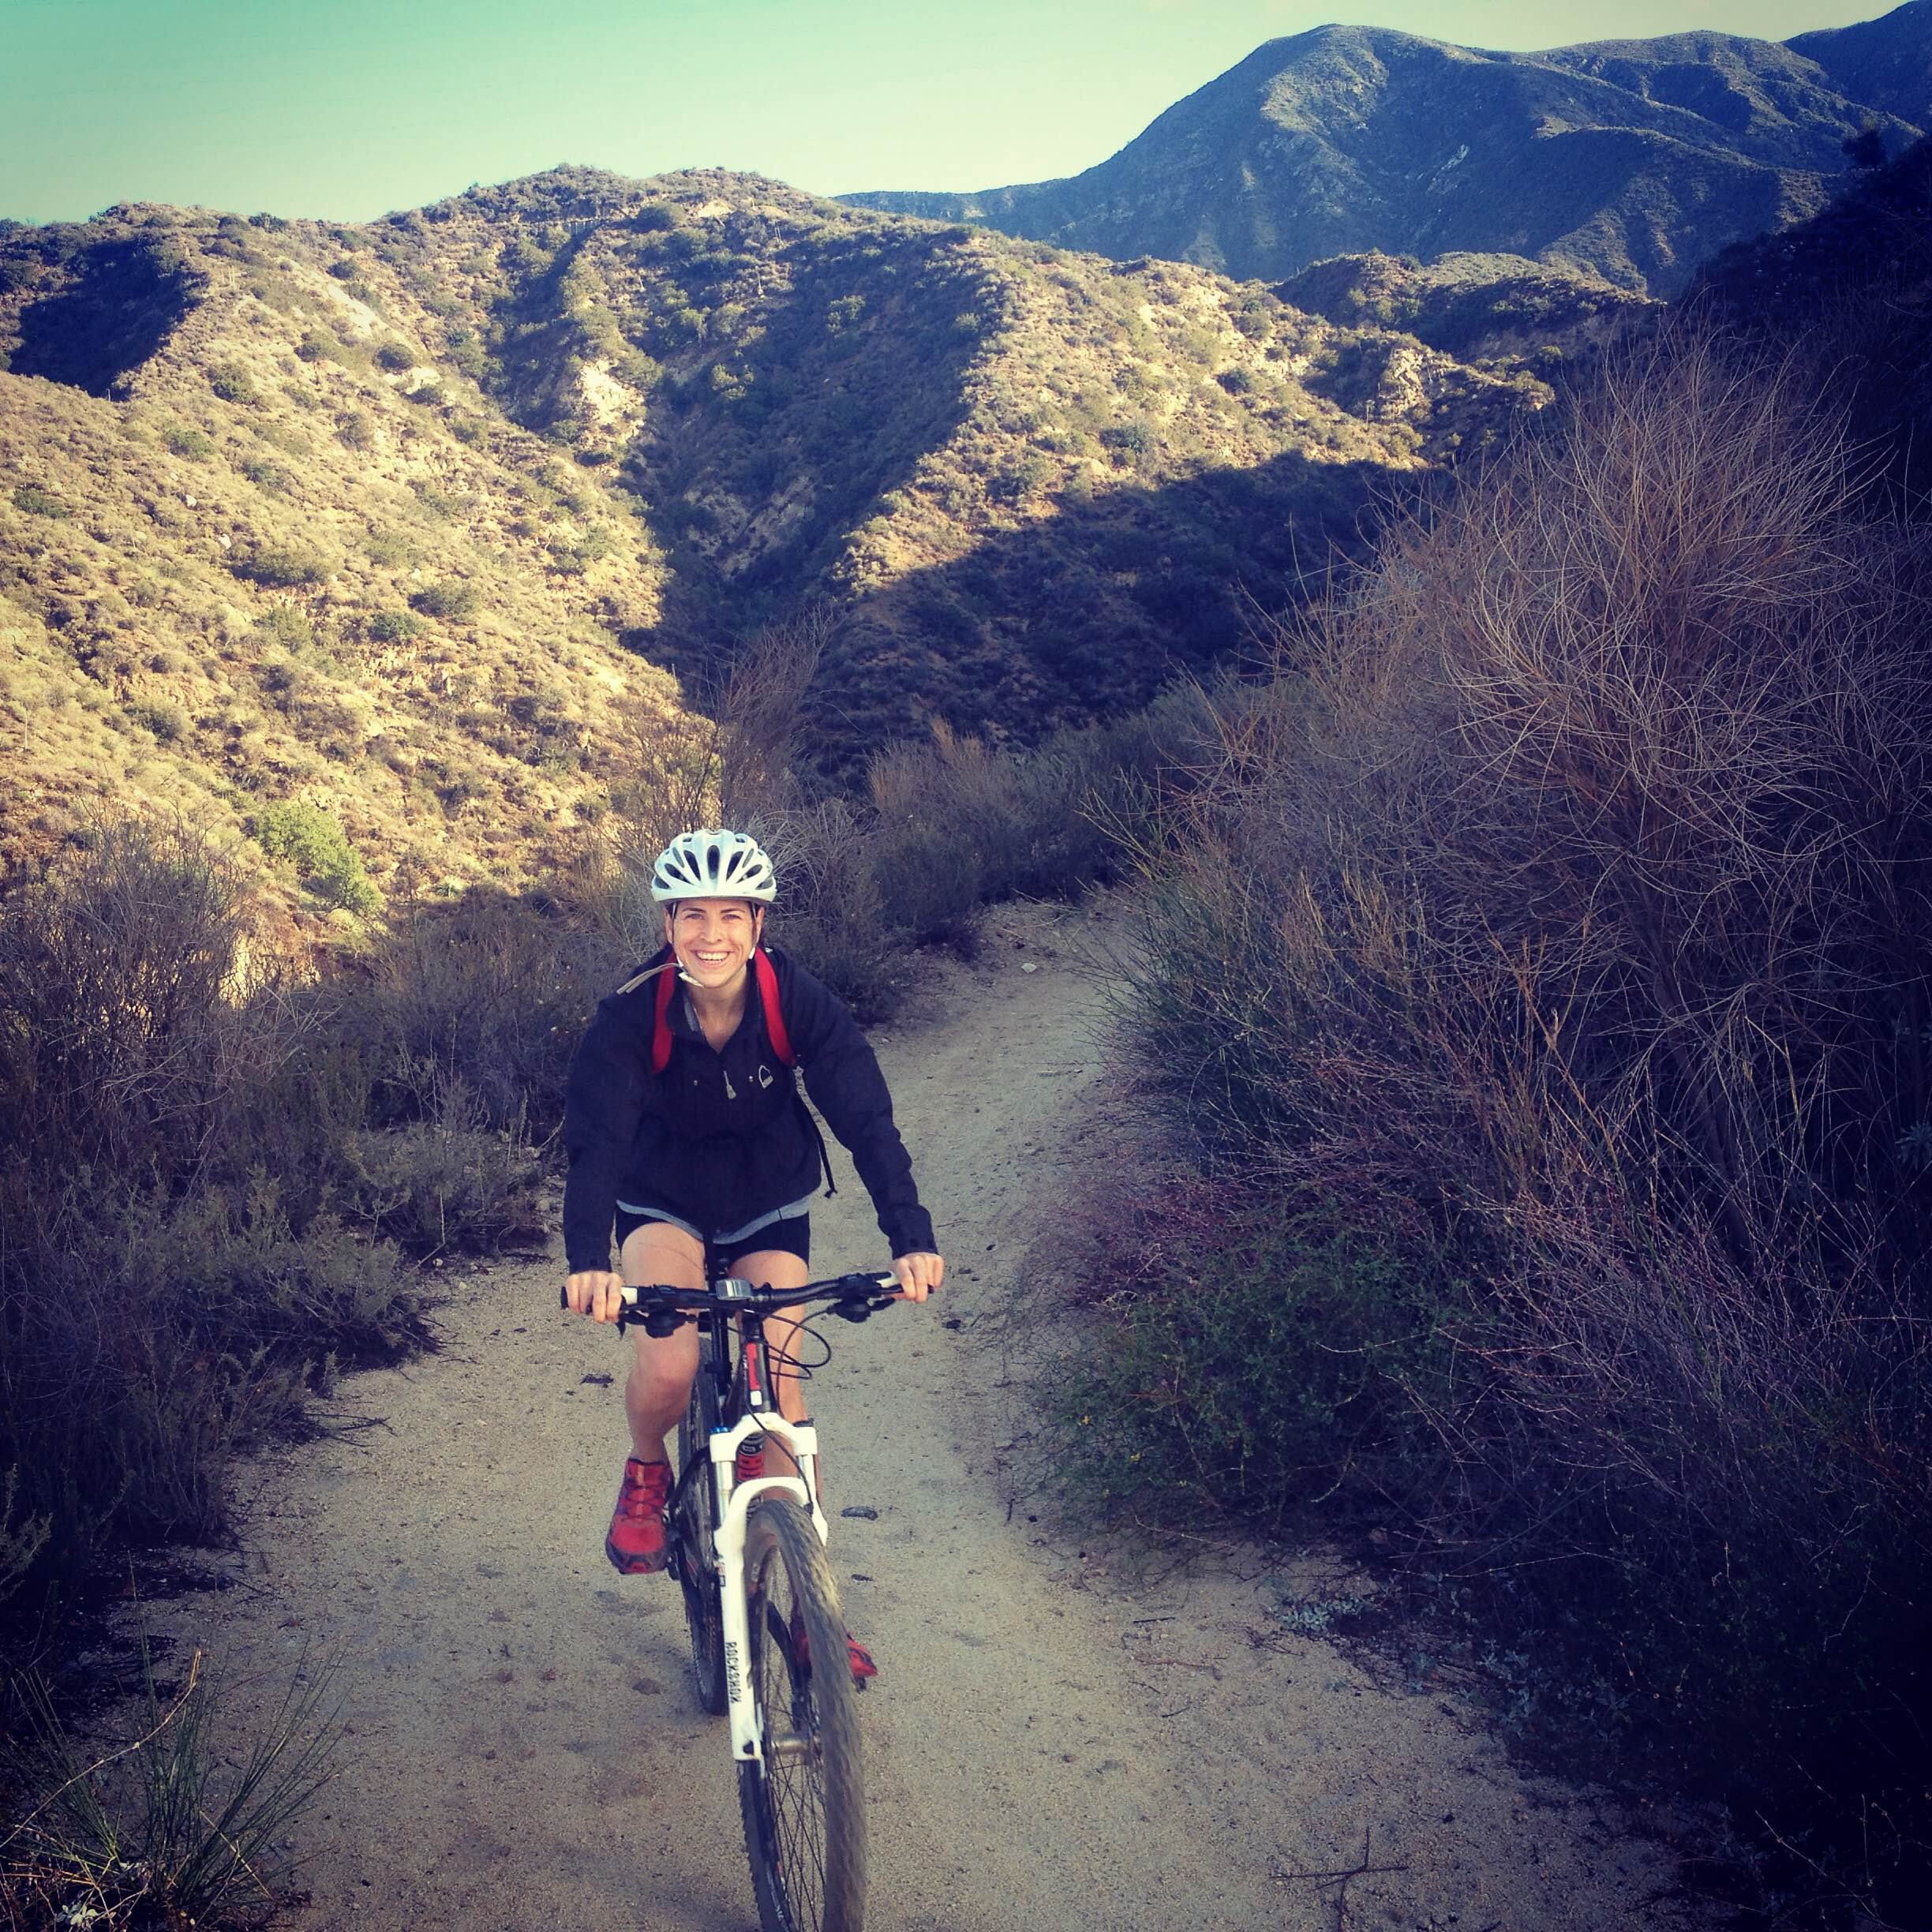 Getting rad in the San Gabriels with Lulu the Mtn. Bike.